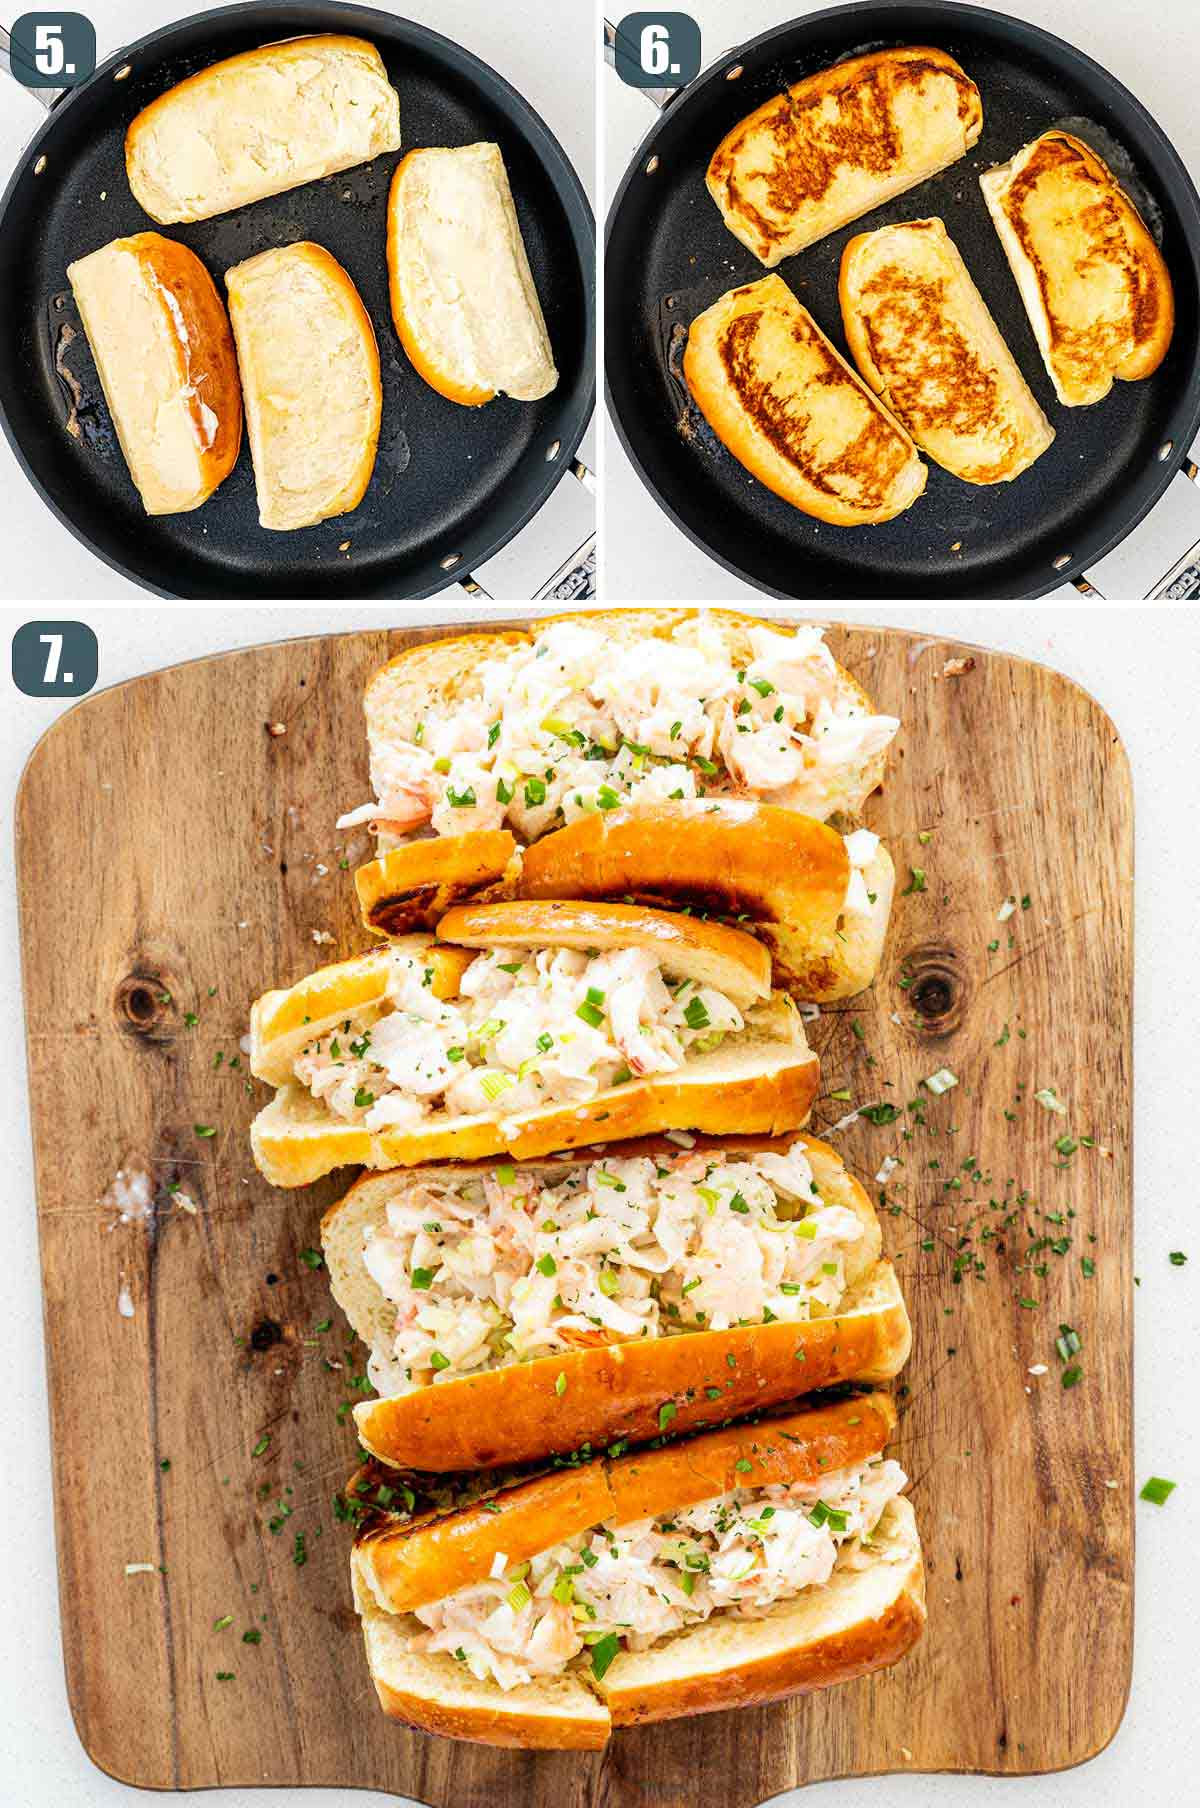 process shots showing how to assemble lobster rolls.